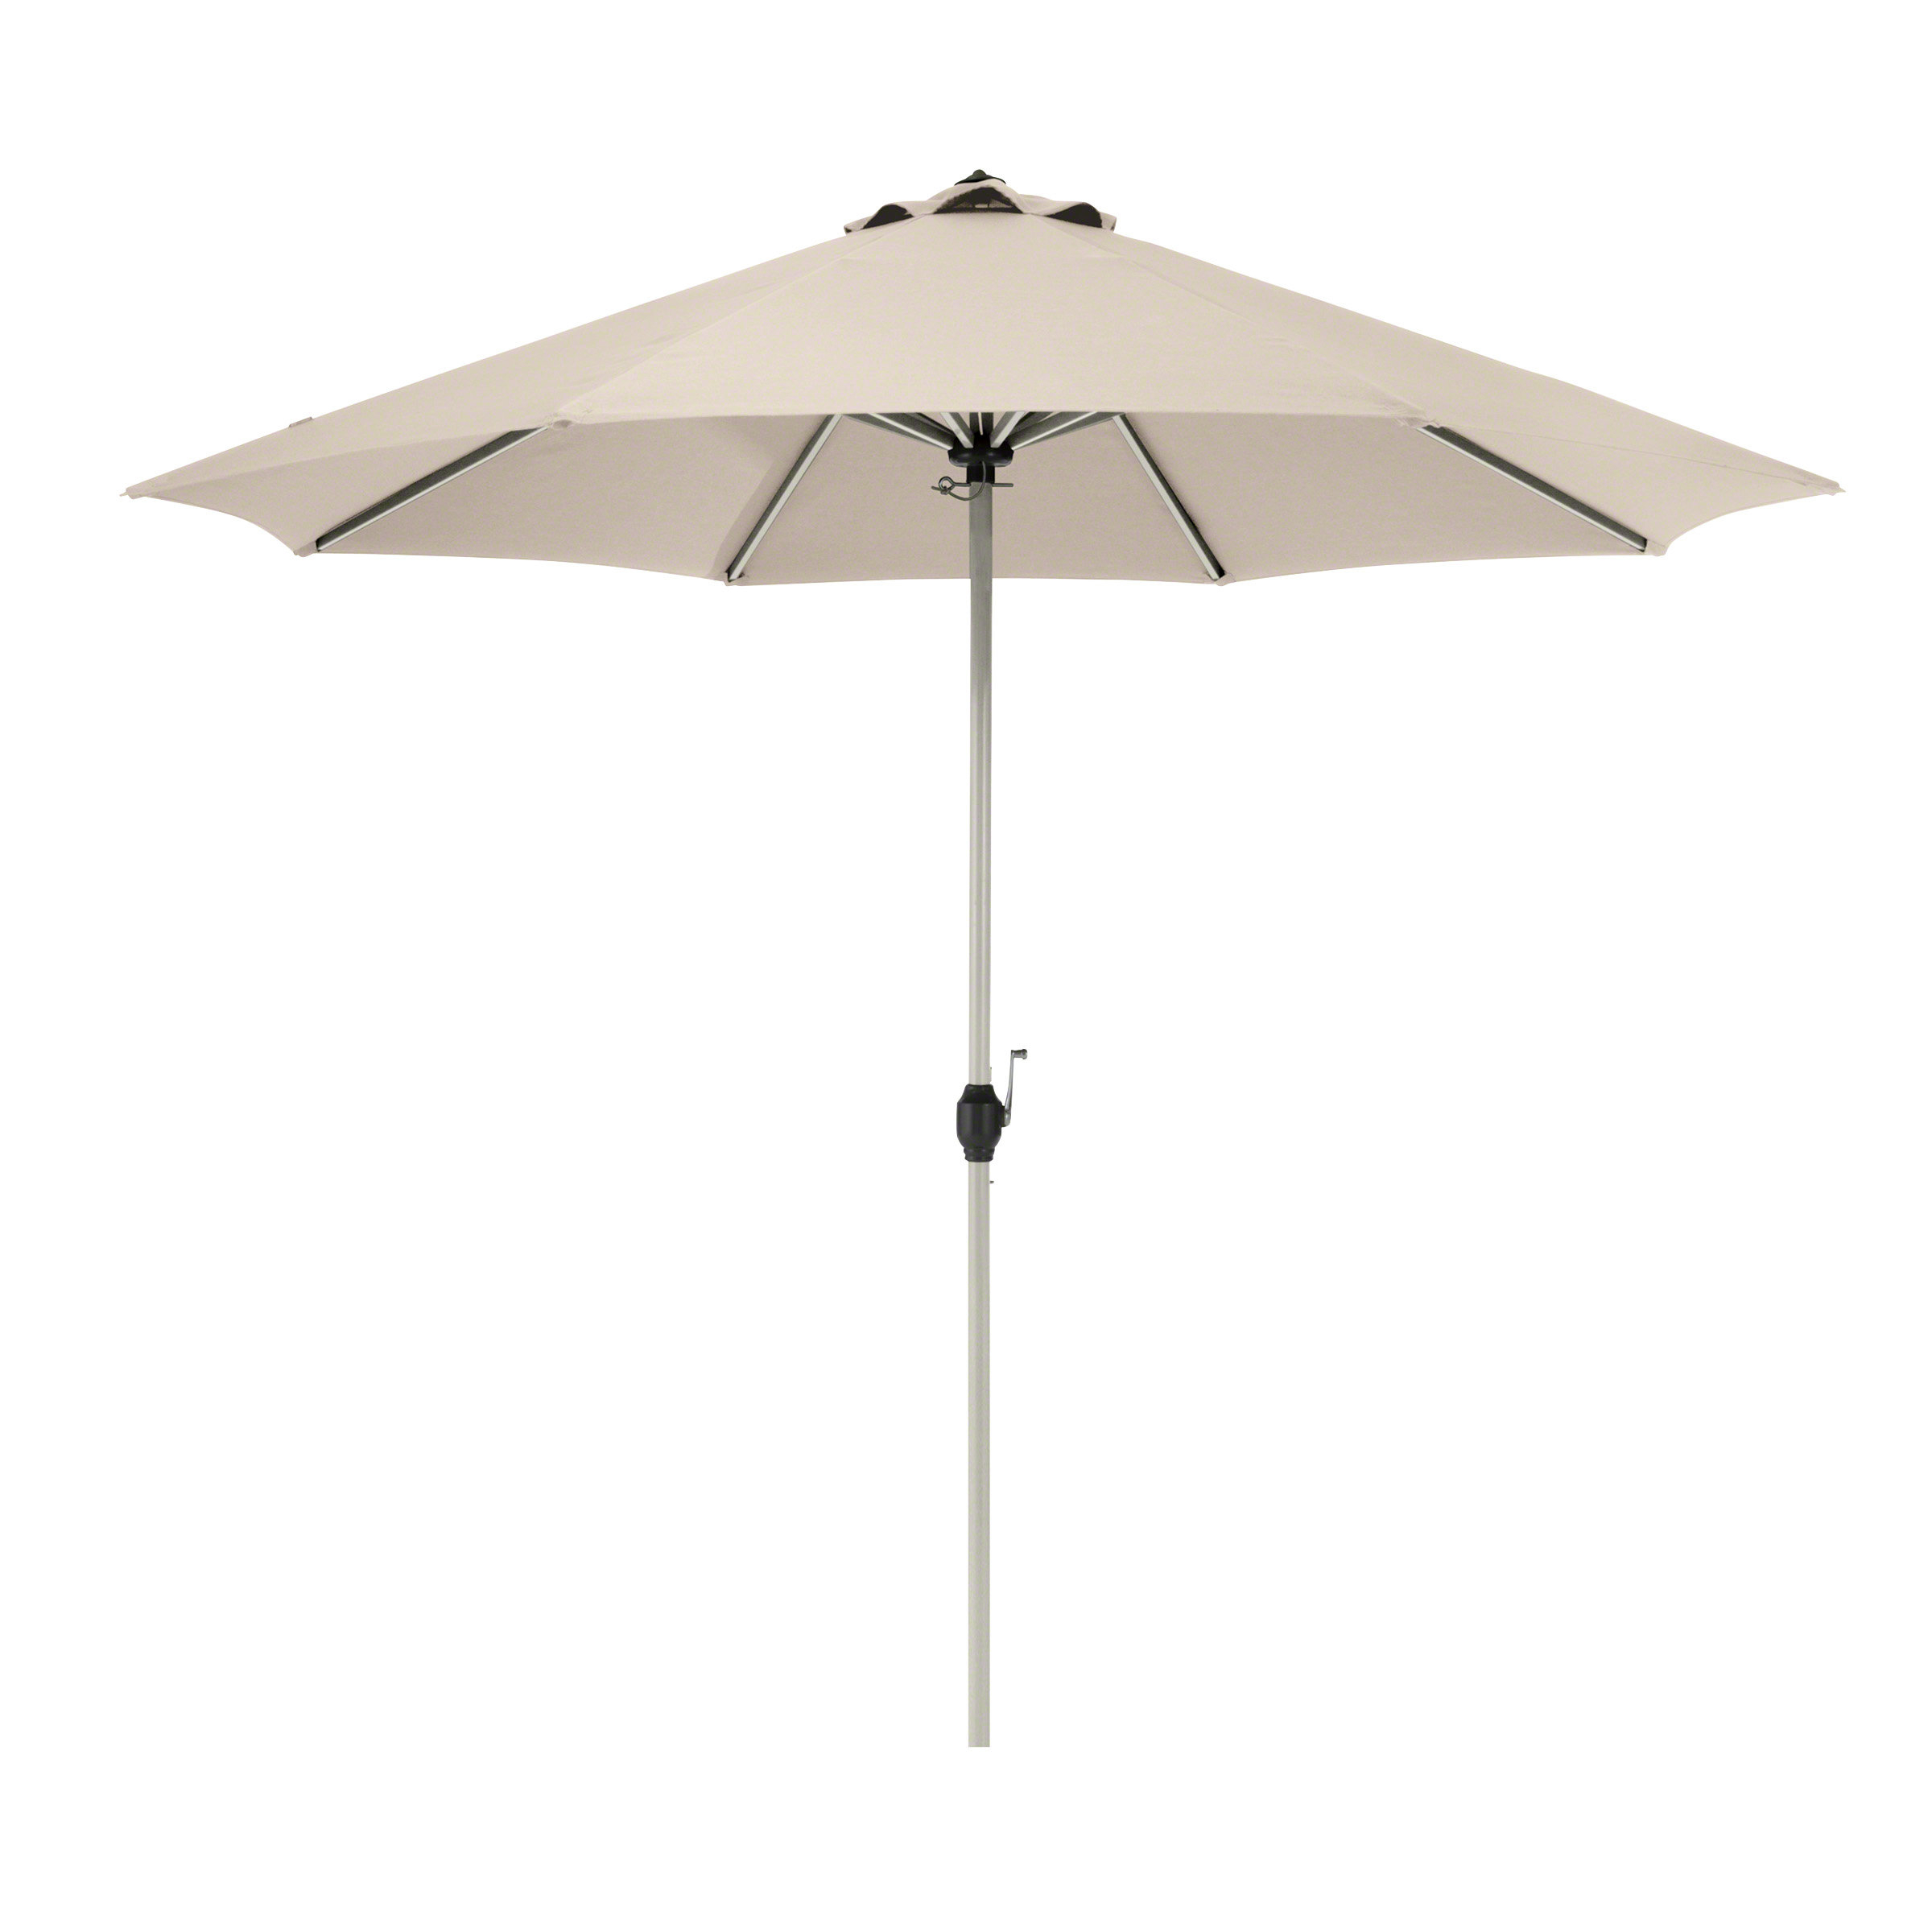 Newest Cannock Market Umbrellas Inside Searcy Fadesafe™ 9' Market Umbrella (View 3 of 20)